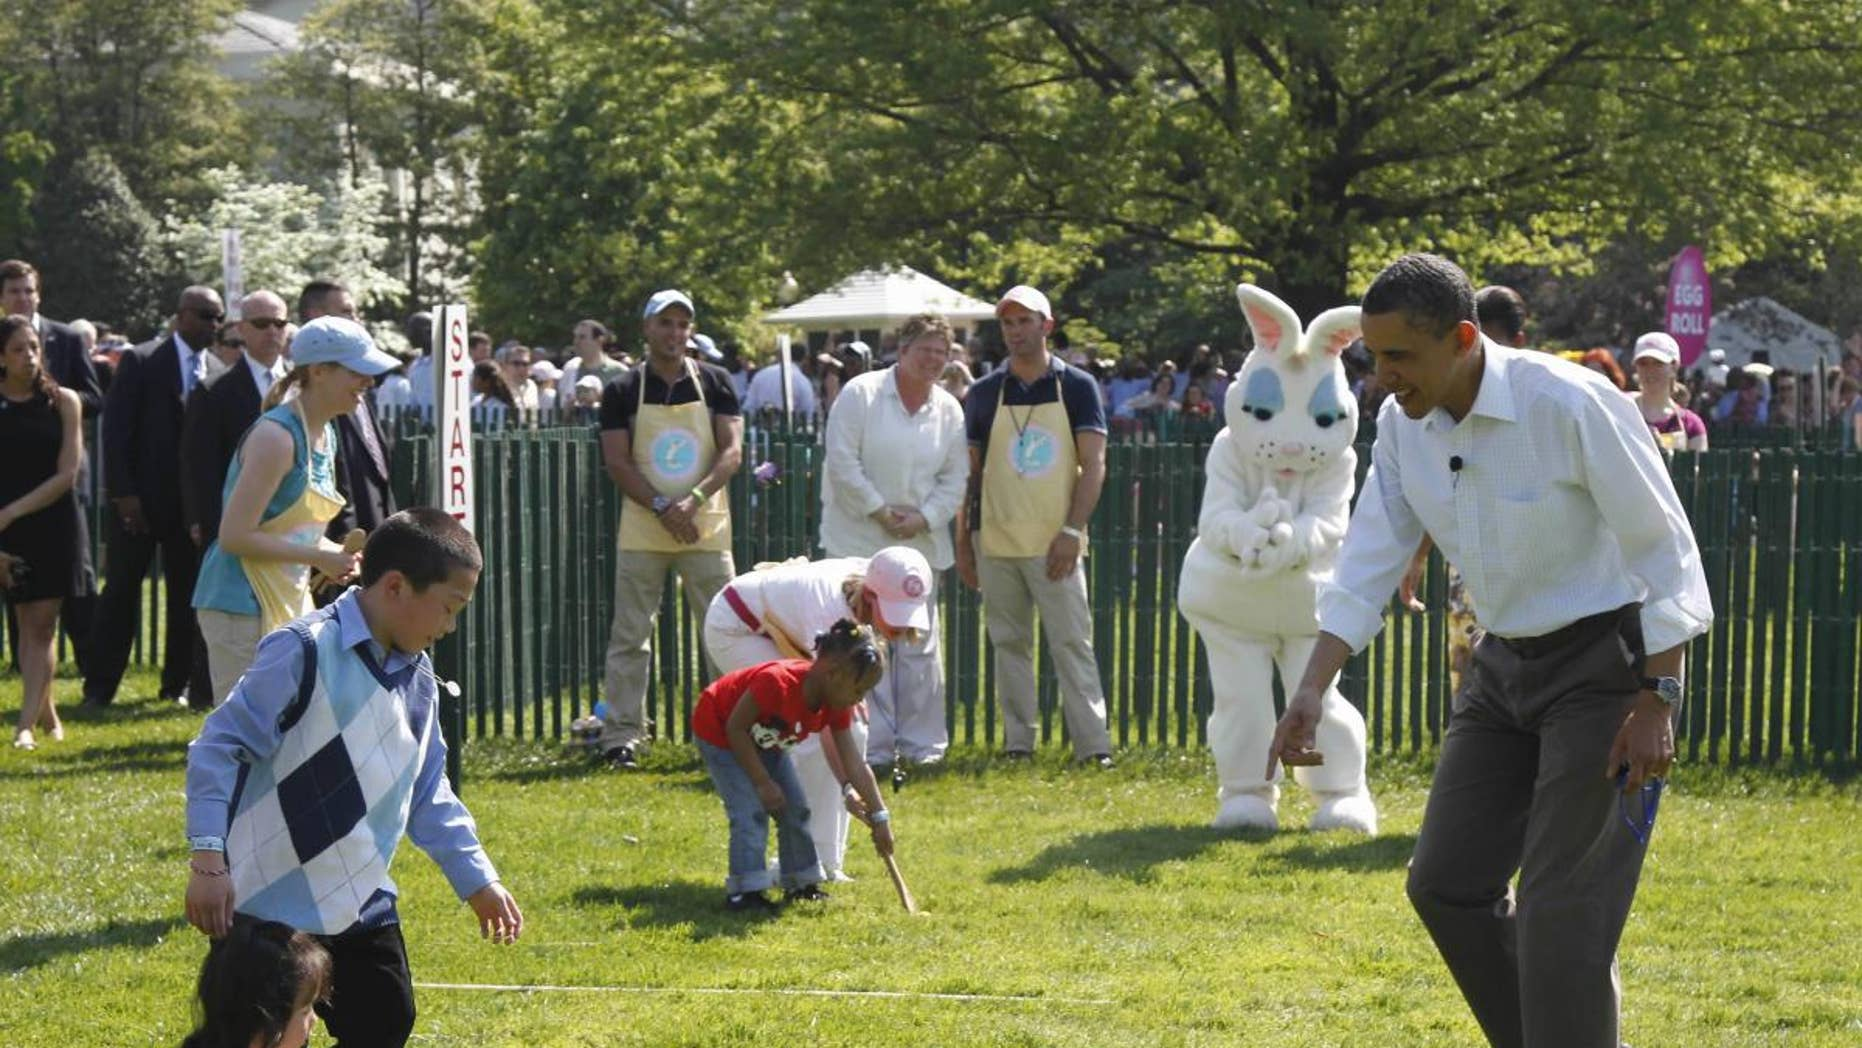 President Barack Obama cheers on children rolling Easter eggs at the White House Easter Egg Roll on the South Lawn of the White House in Washington, Monday, April 25, 2011. (AP Photo/Charles Dharapak)